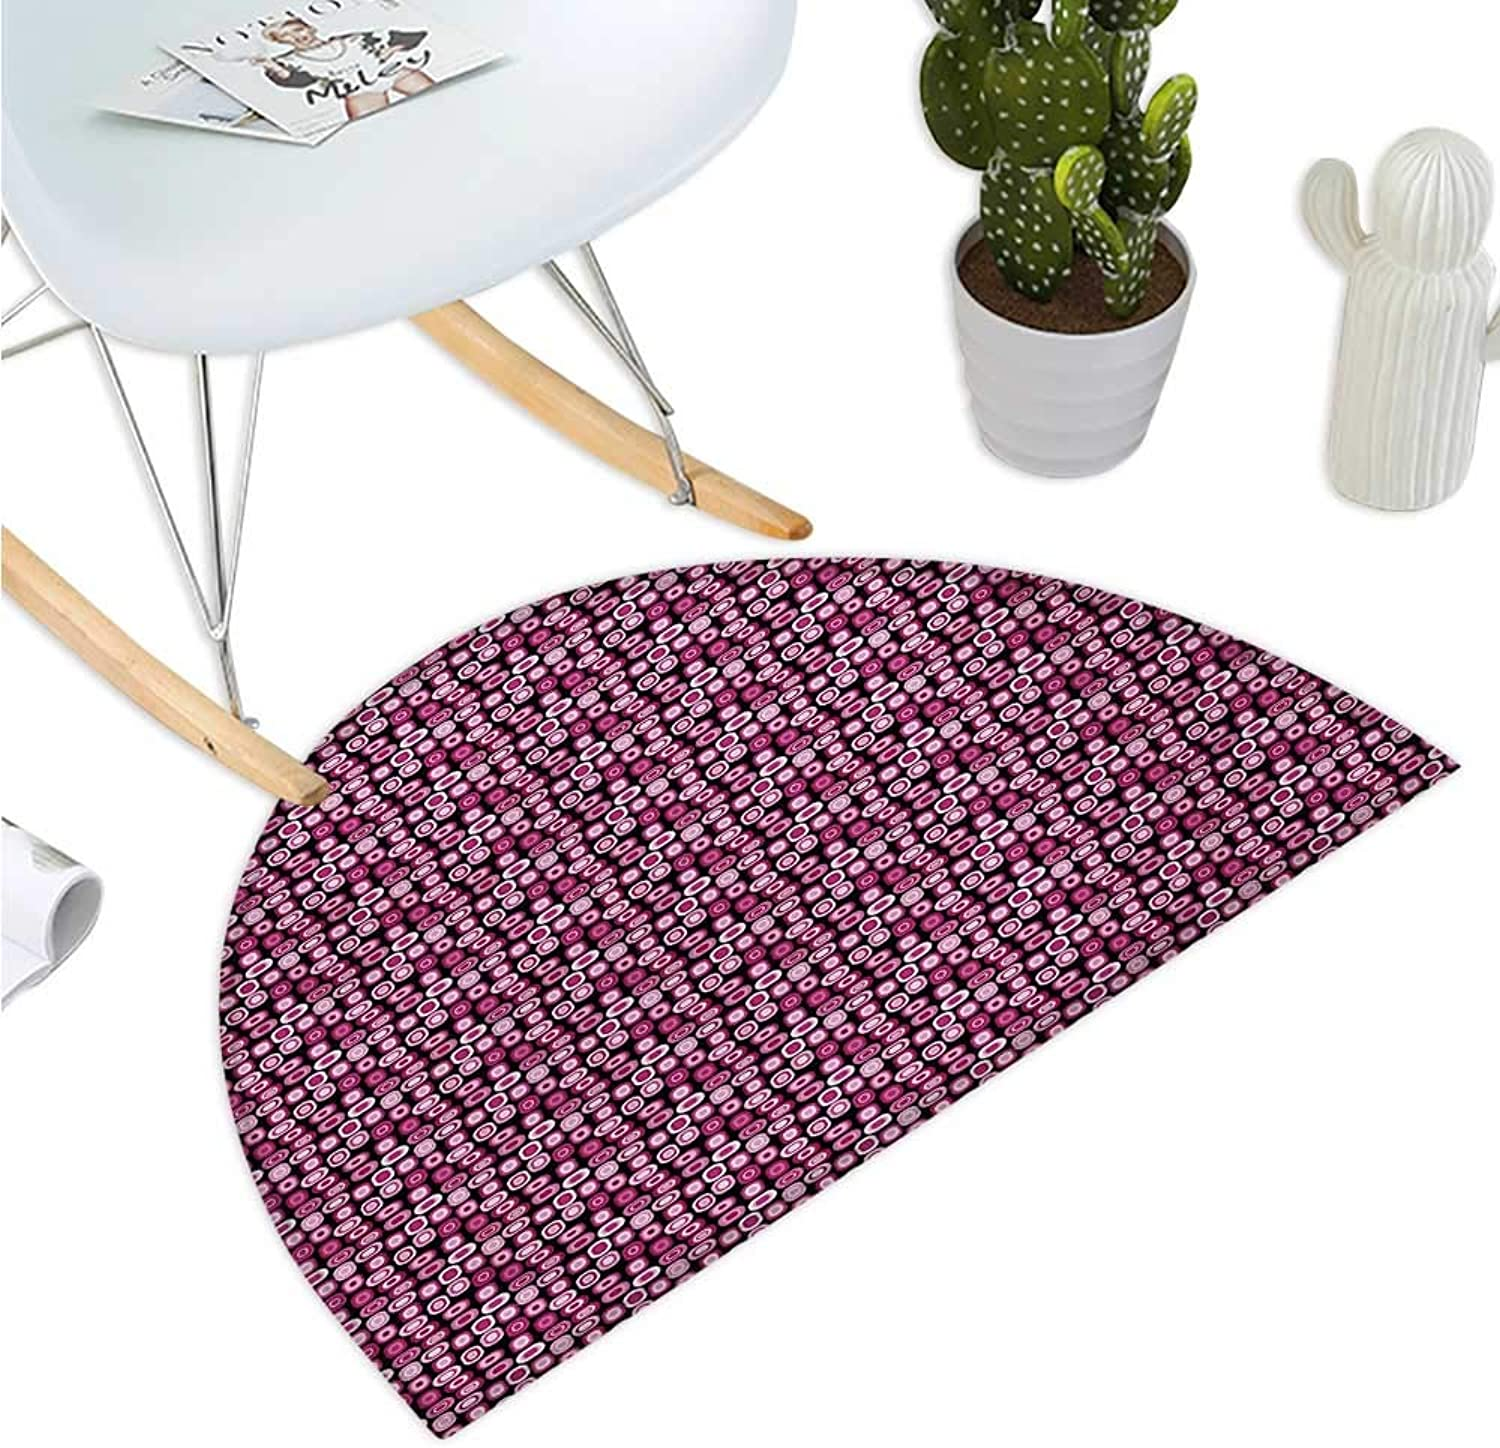 Abstract Semicircular Cushion Oval Figures Vibrant color Palette Modern Cubism Inspired Geometric Bathroom Mat H 39.3  xD 59  Magenta Pale Pink Black